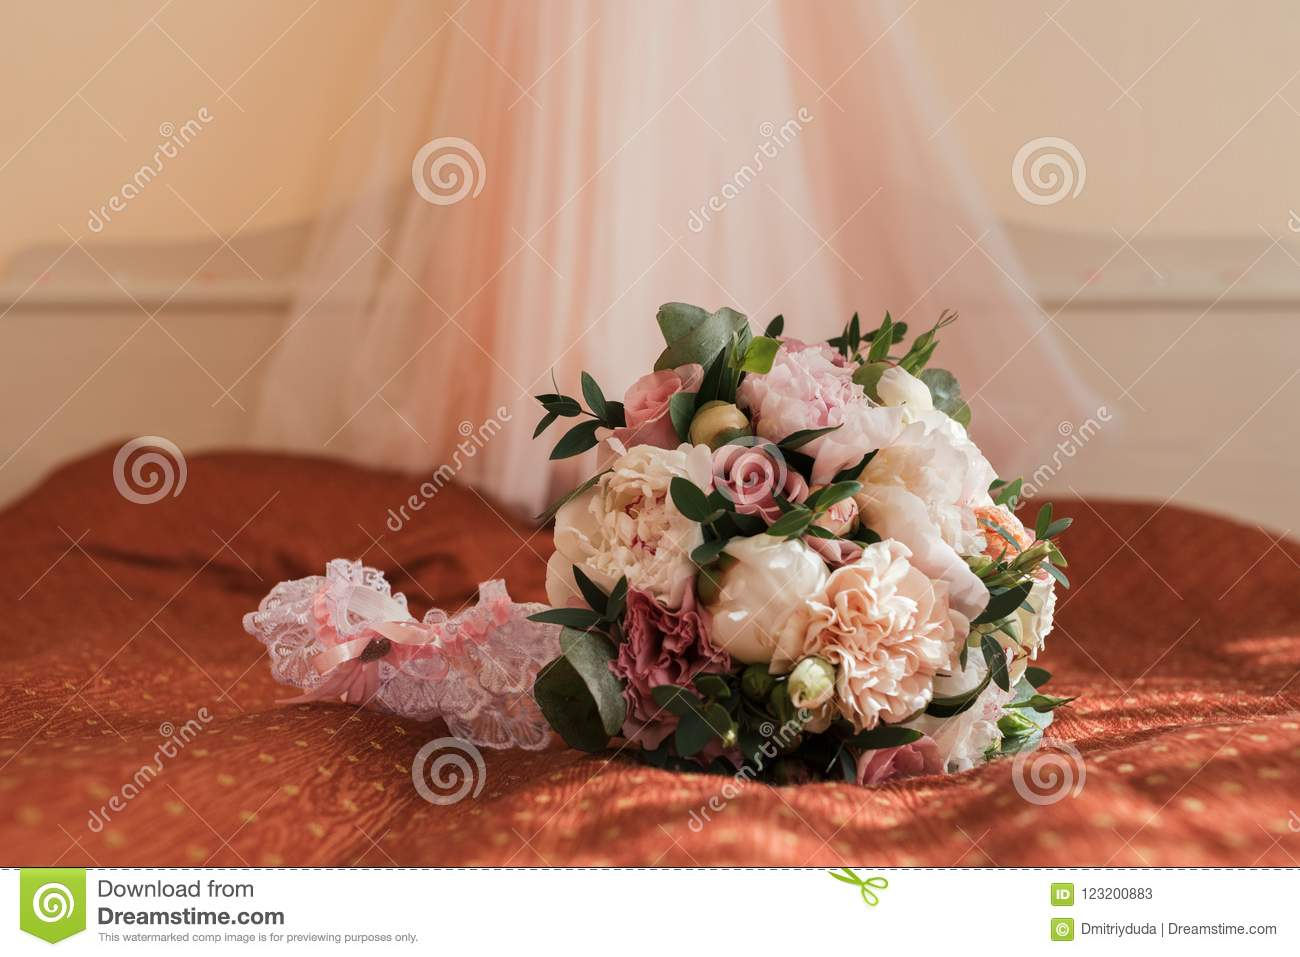 Bed of Roses Bridal Bouquet